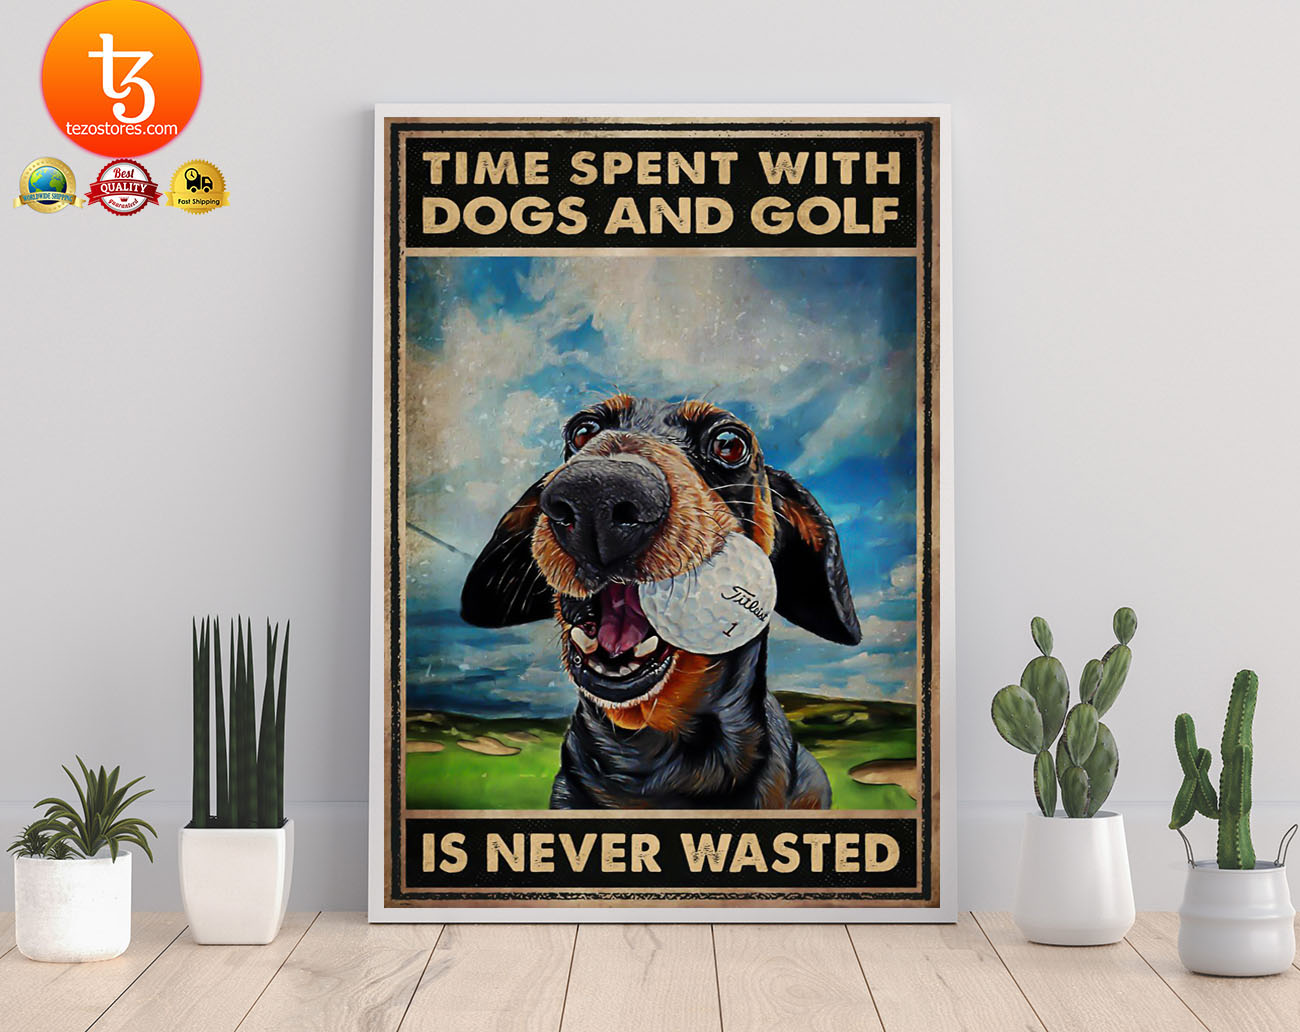 Time spent with dogs and golf is never wasted poster 2